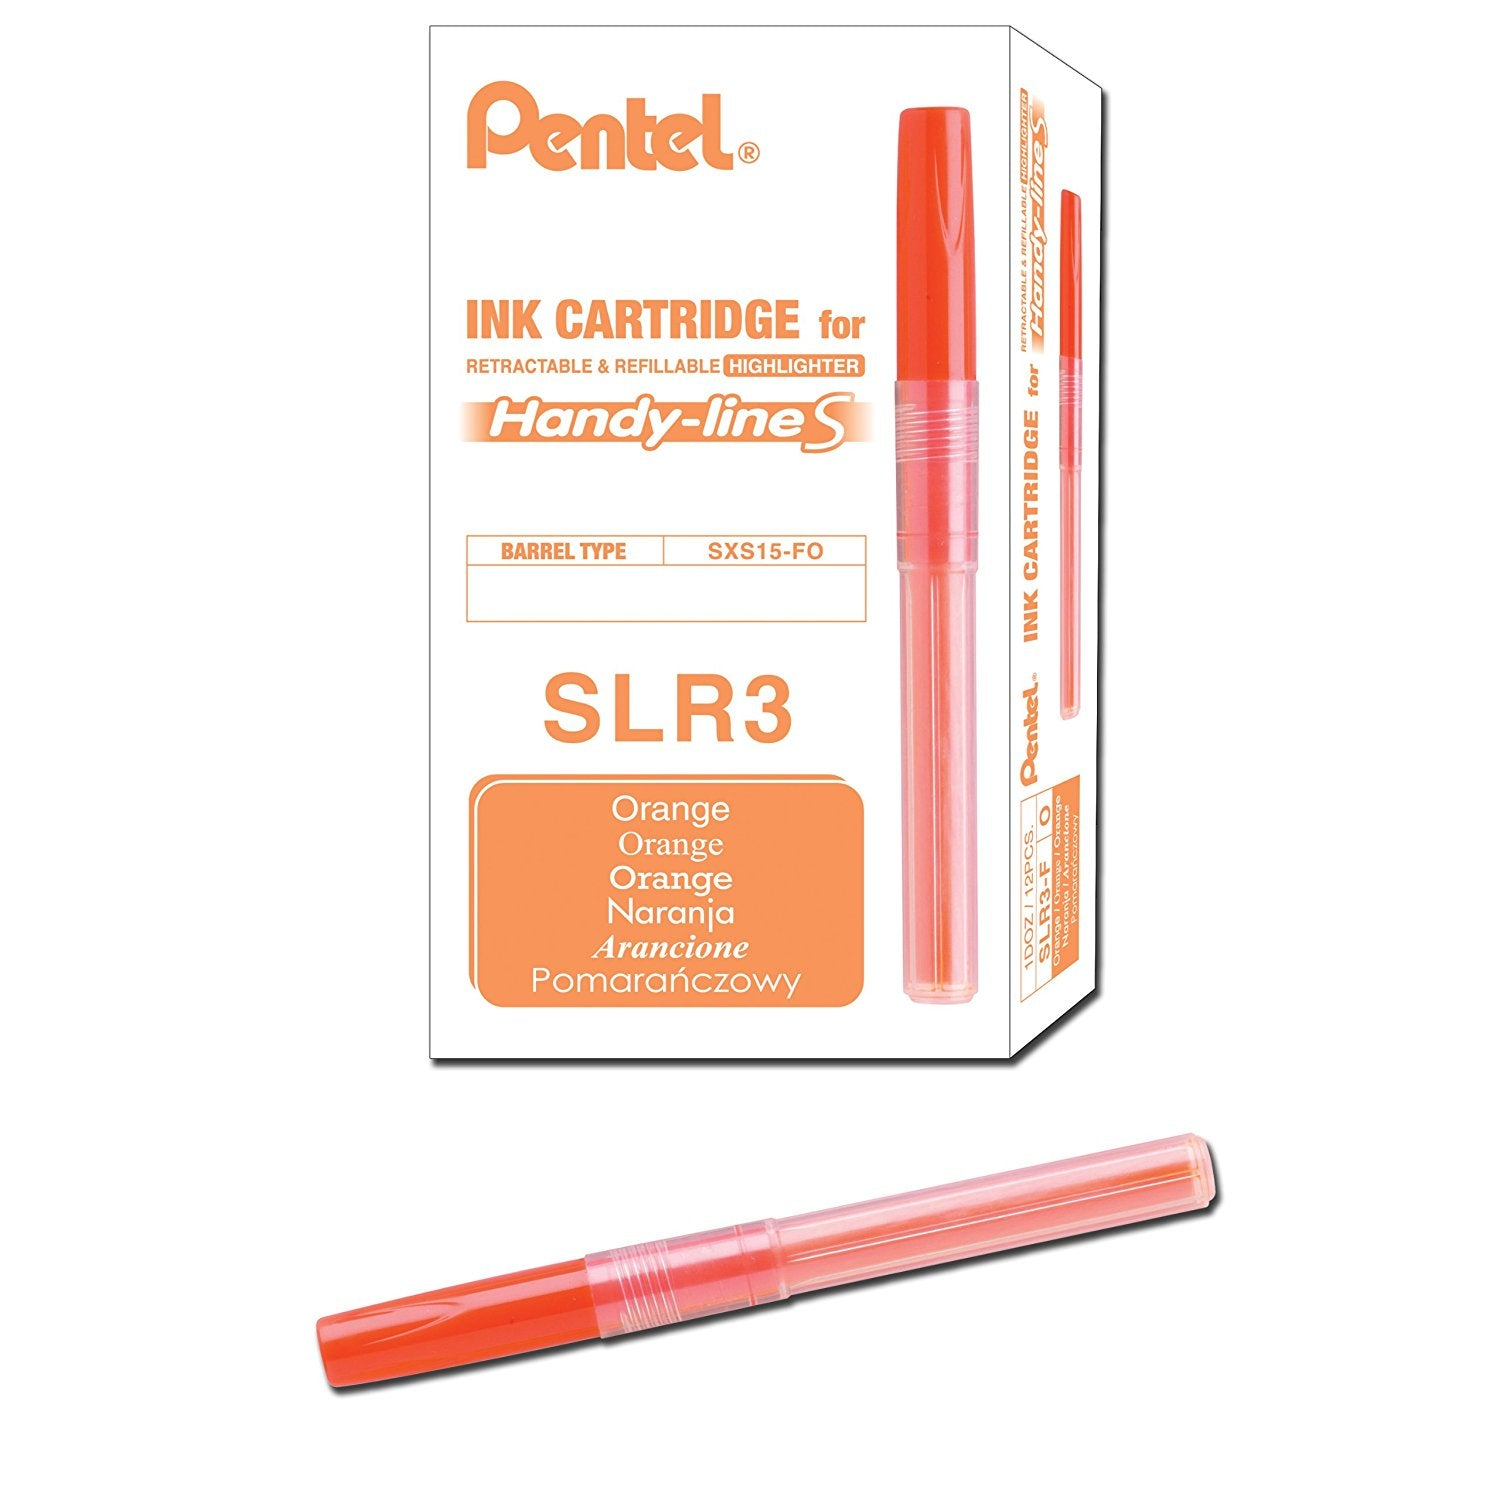 Pentel Handy-line S SLR3 Highlighter Refills (12pcs) - Orange [SLR3-FO]